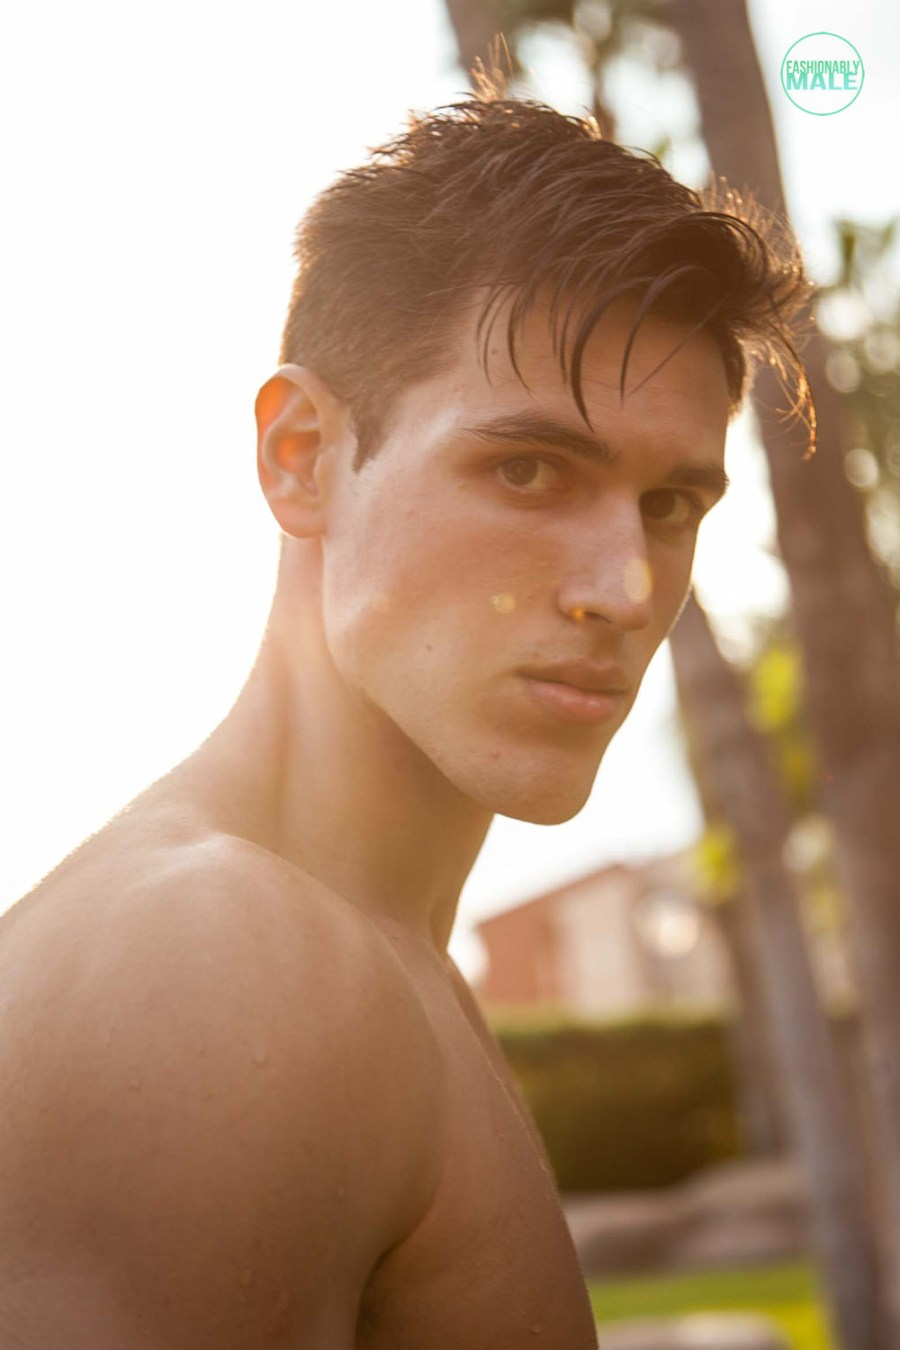 Guillermo by Jose Martinez for Fashionably Male 03